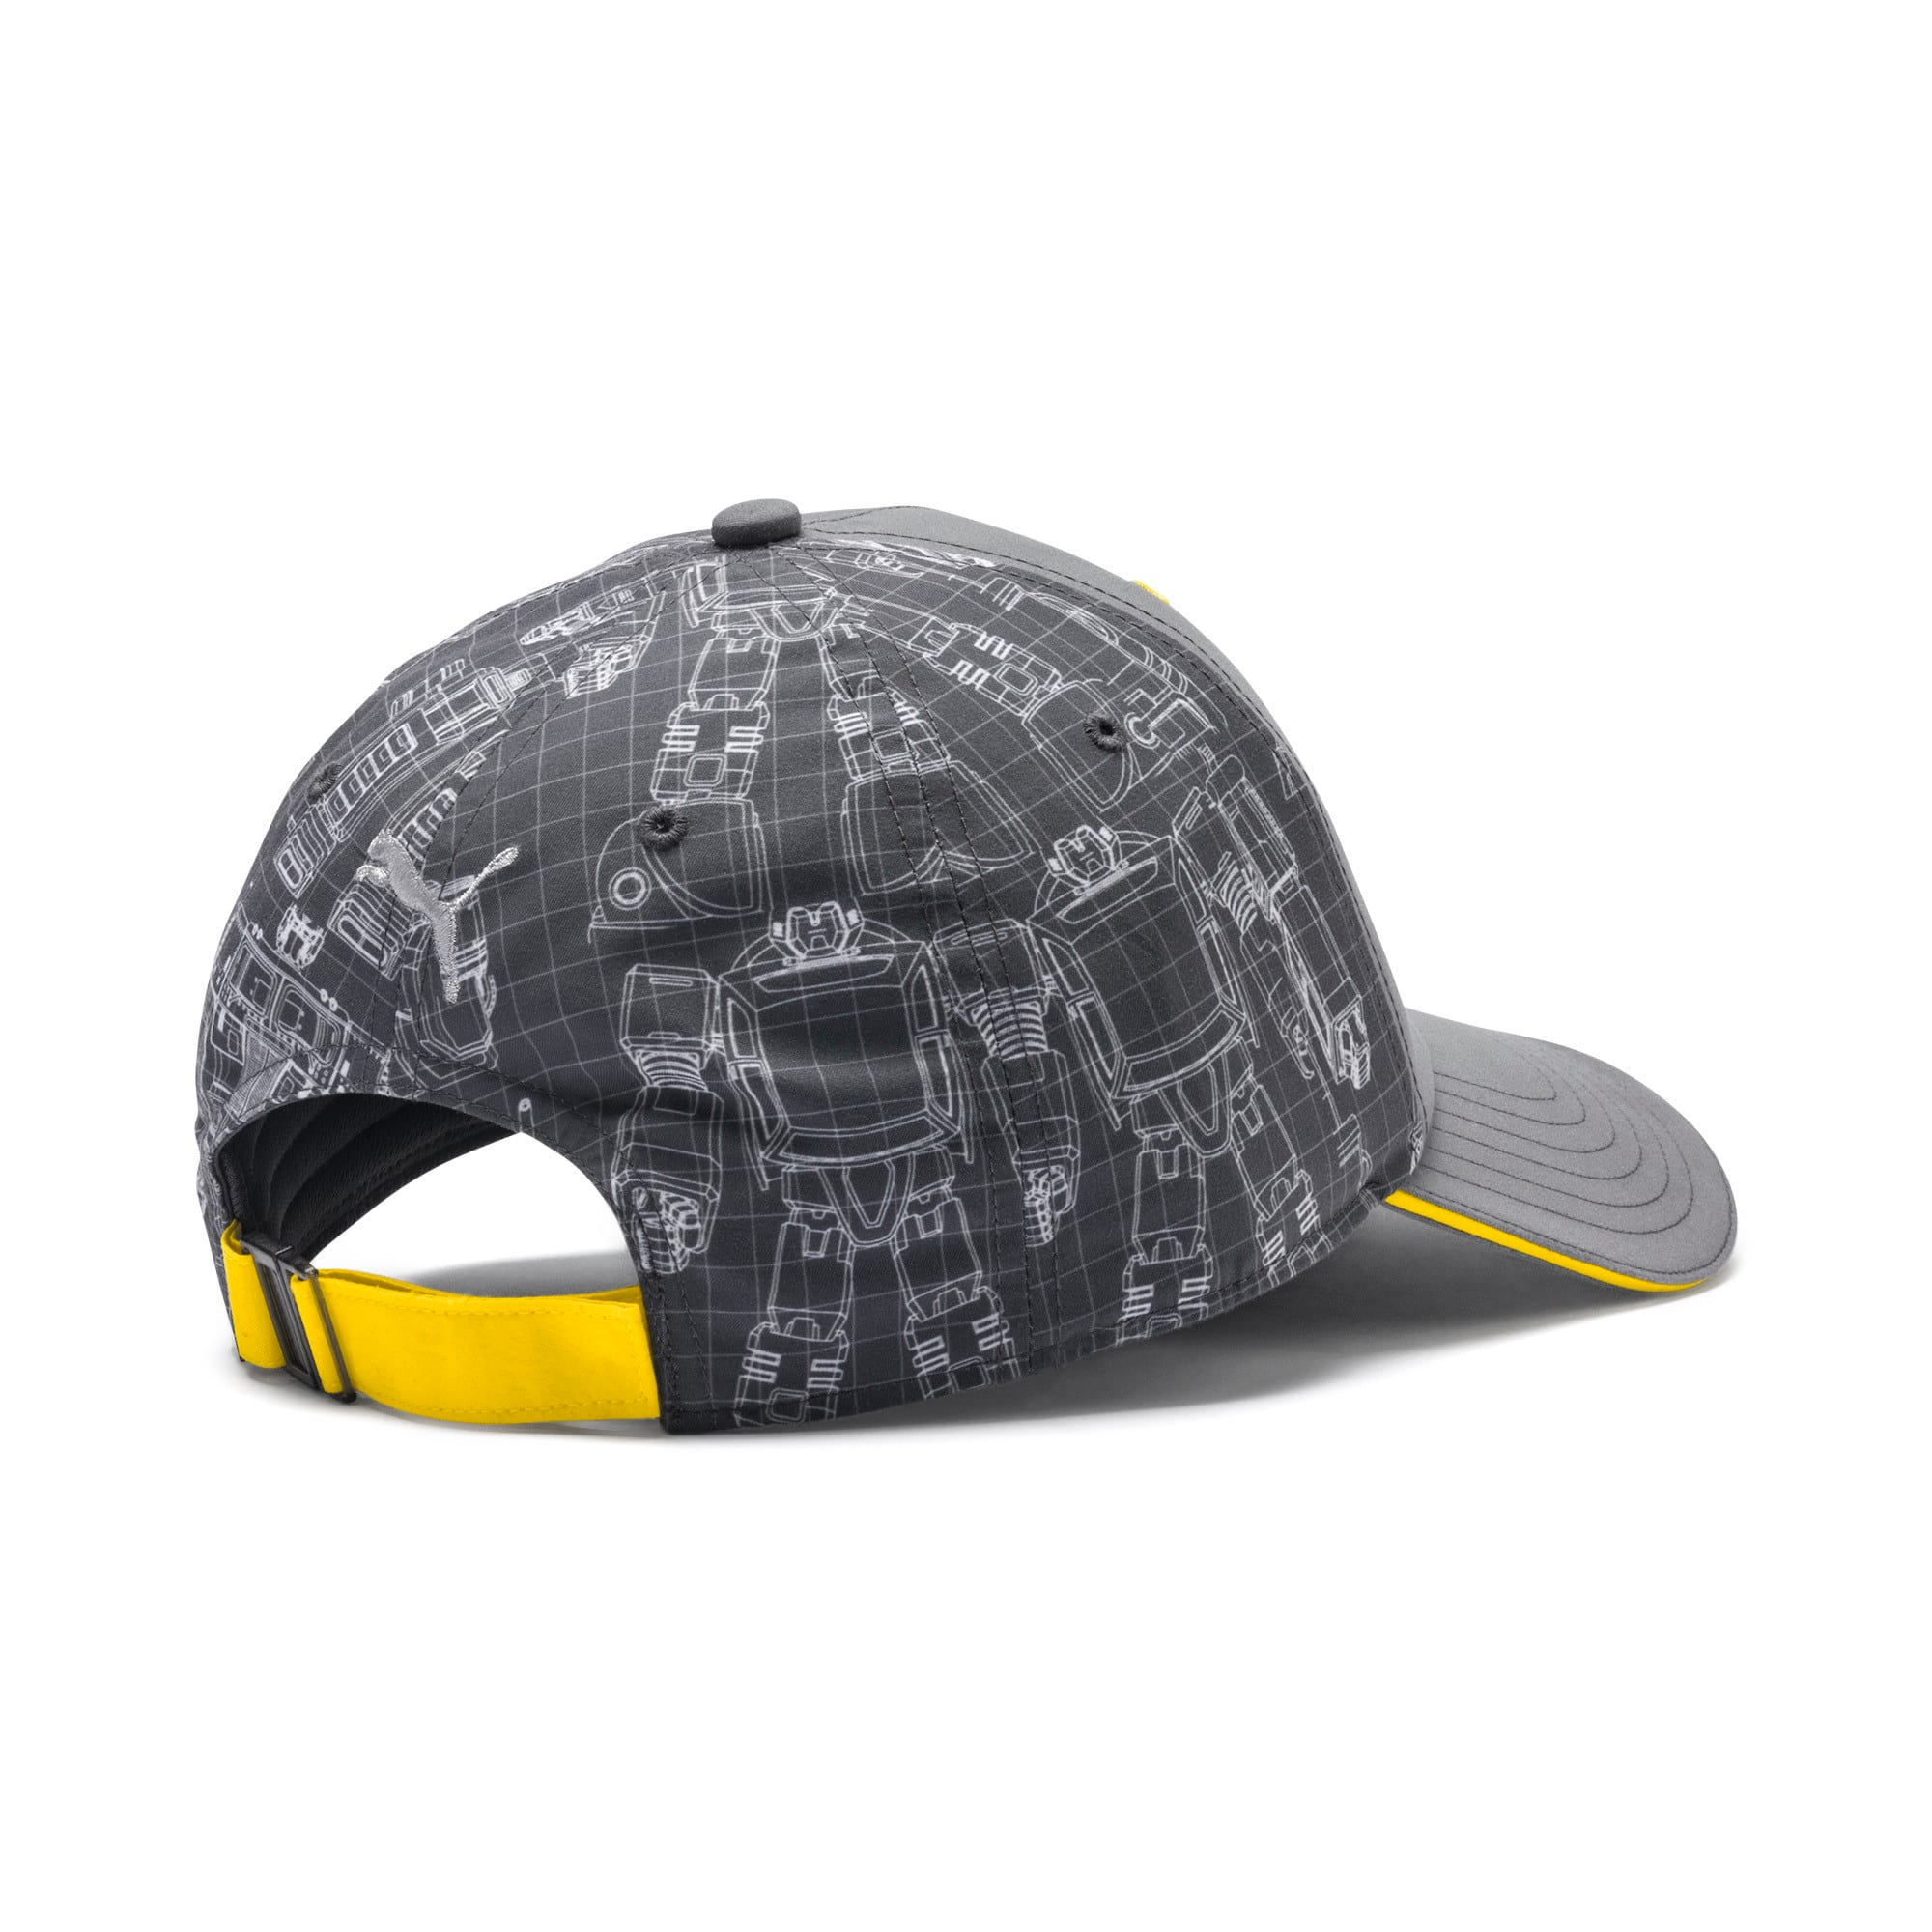 Thumbnail 2 of PUMA x TRANSFORMERS baseball-pet, QUIET SHADE-Cyber Yellow, medium